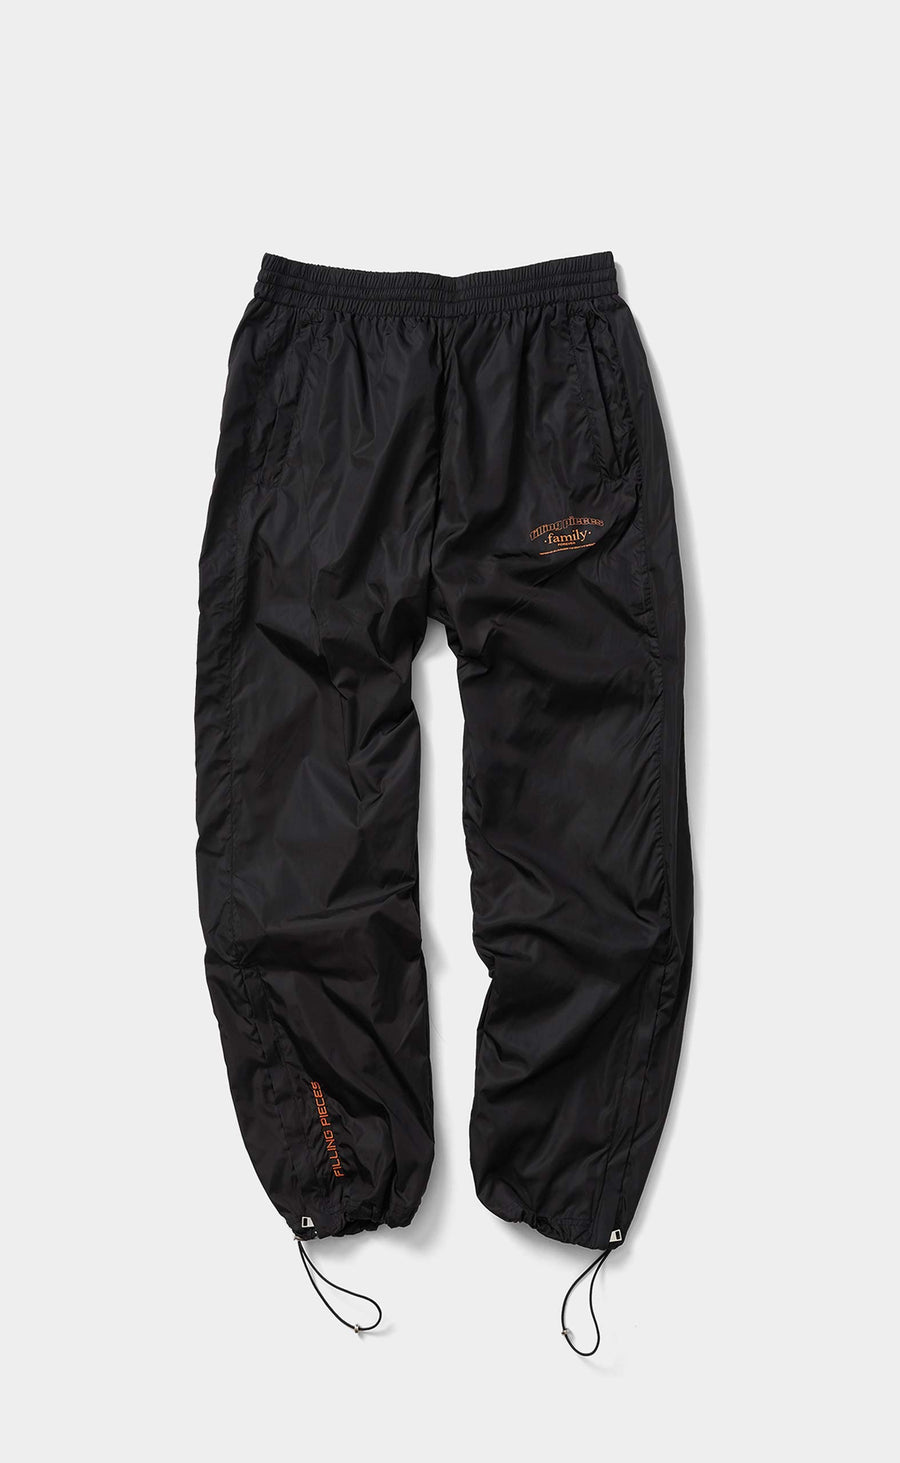 Nylon Cord Pants Wide Fit Classic Black - men